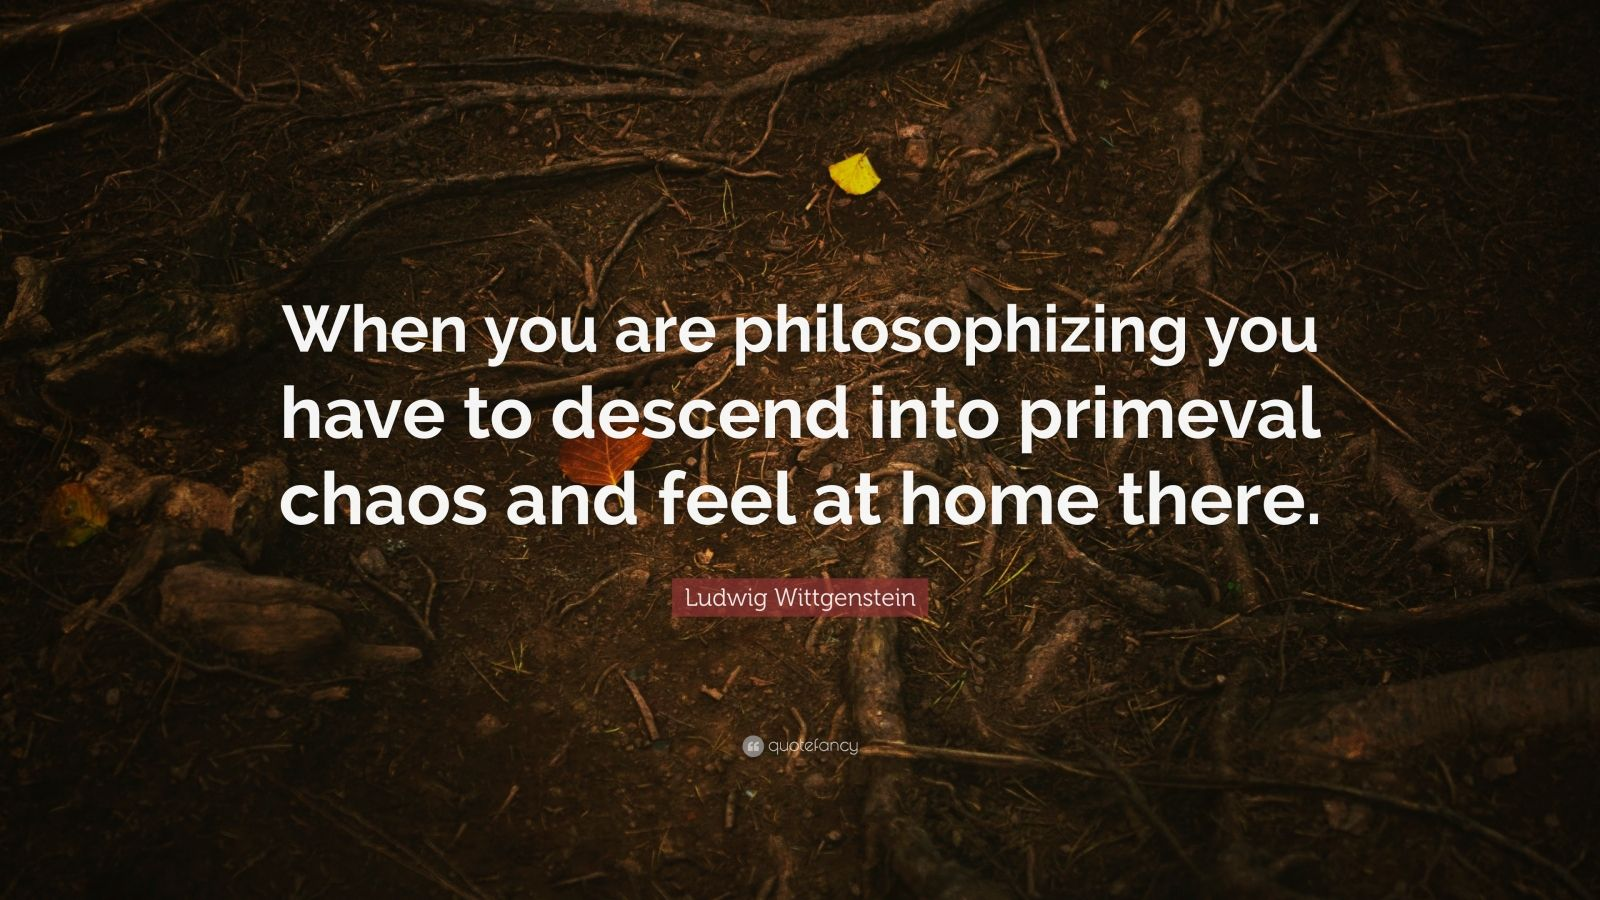 """Ludwig Wittgenstein Quote: """"When you are philosophizing you have to descend into primeval chaos and feel at home there."""""""